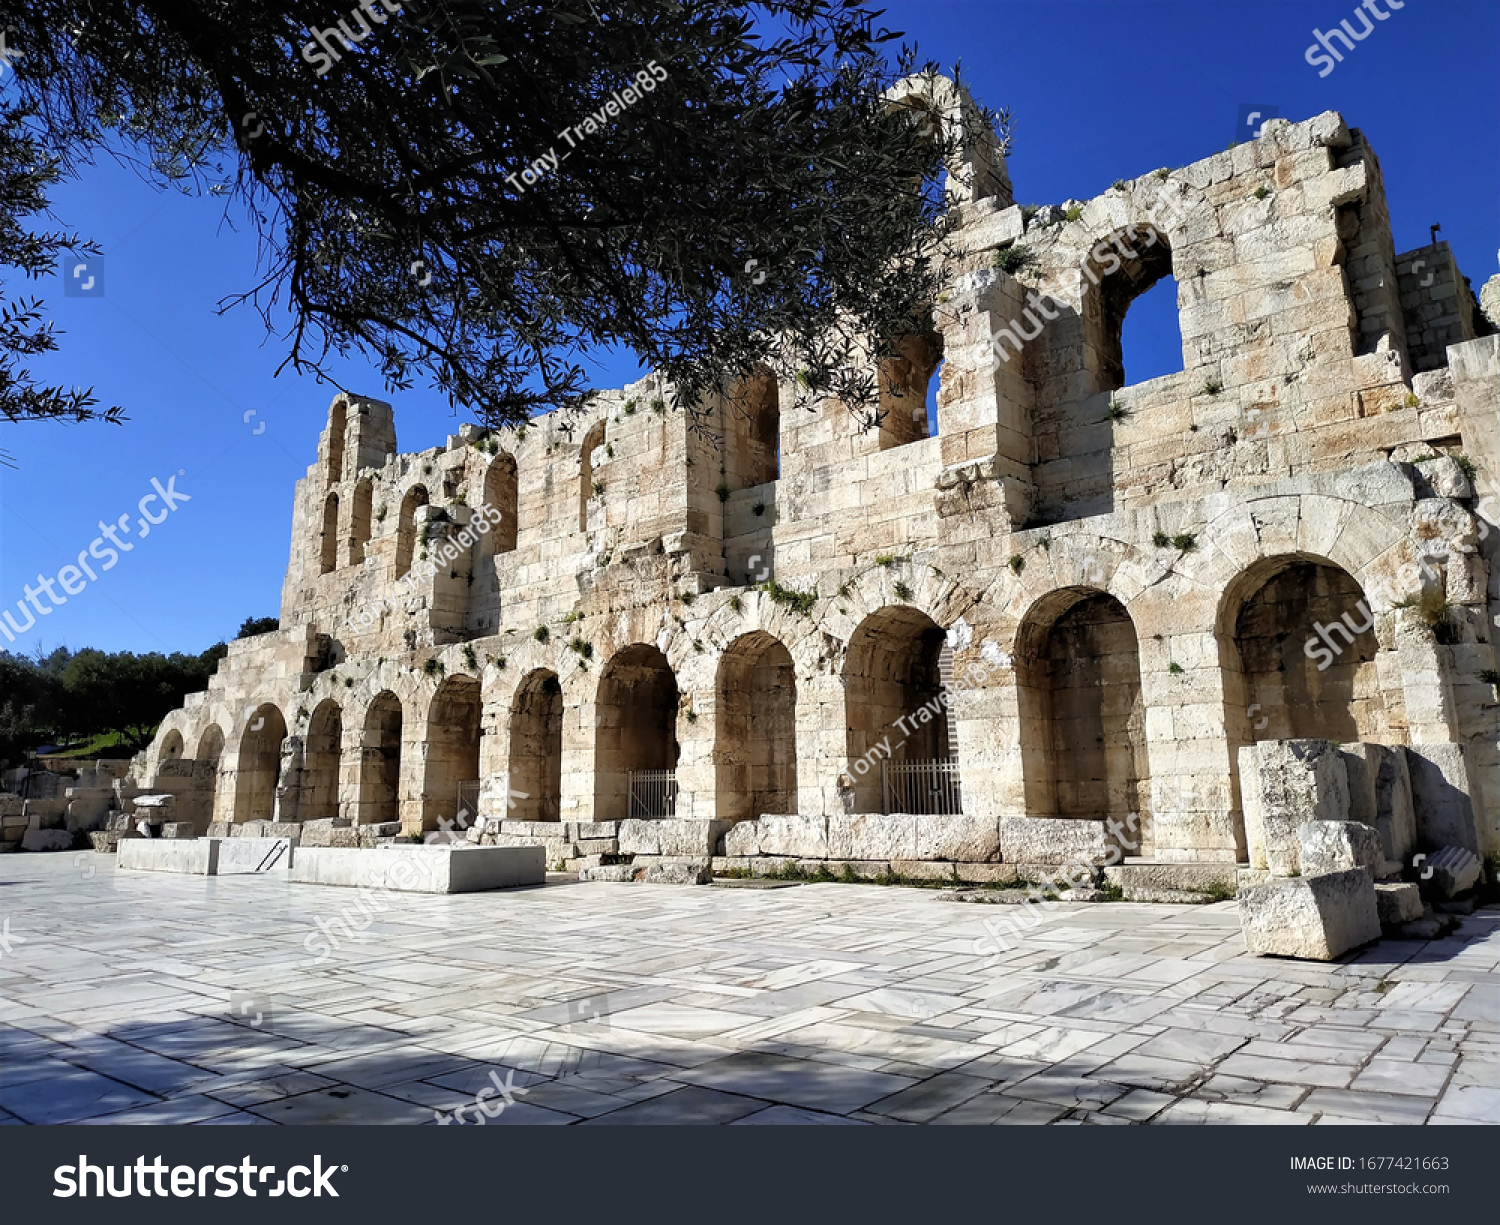 Athens, Greece - March 2020: Ancient Ruins of theatre of Dionysus in Athens, Greece and in the background the majestic Acropolis of Athens.